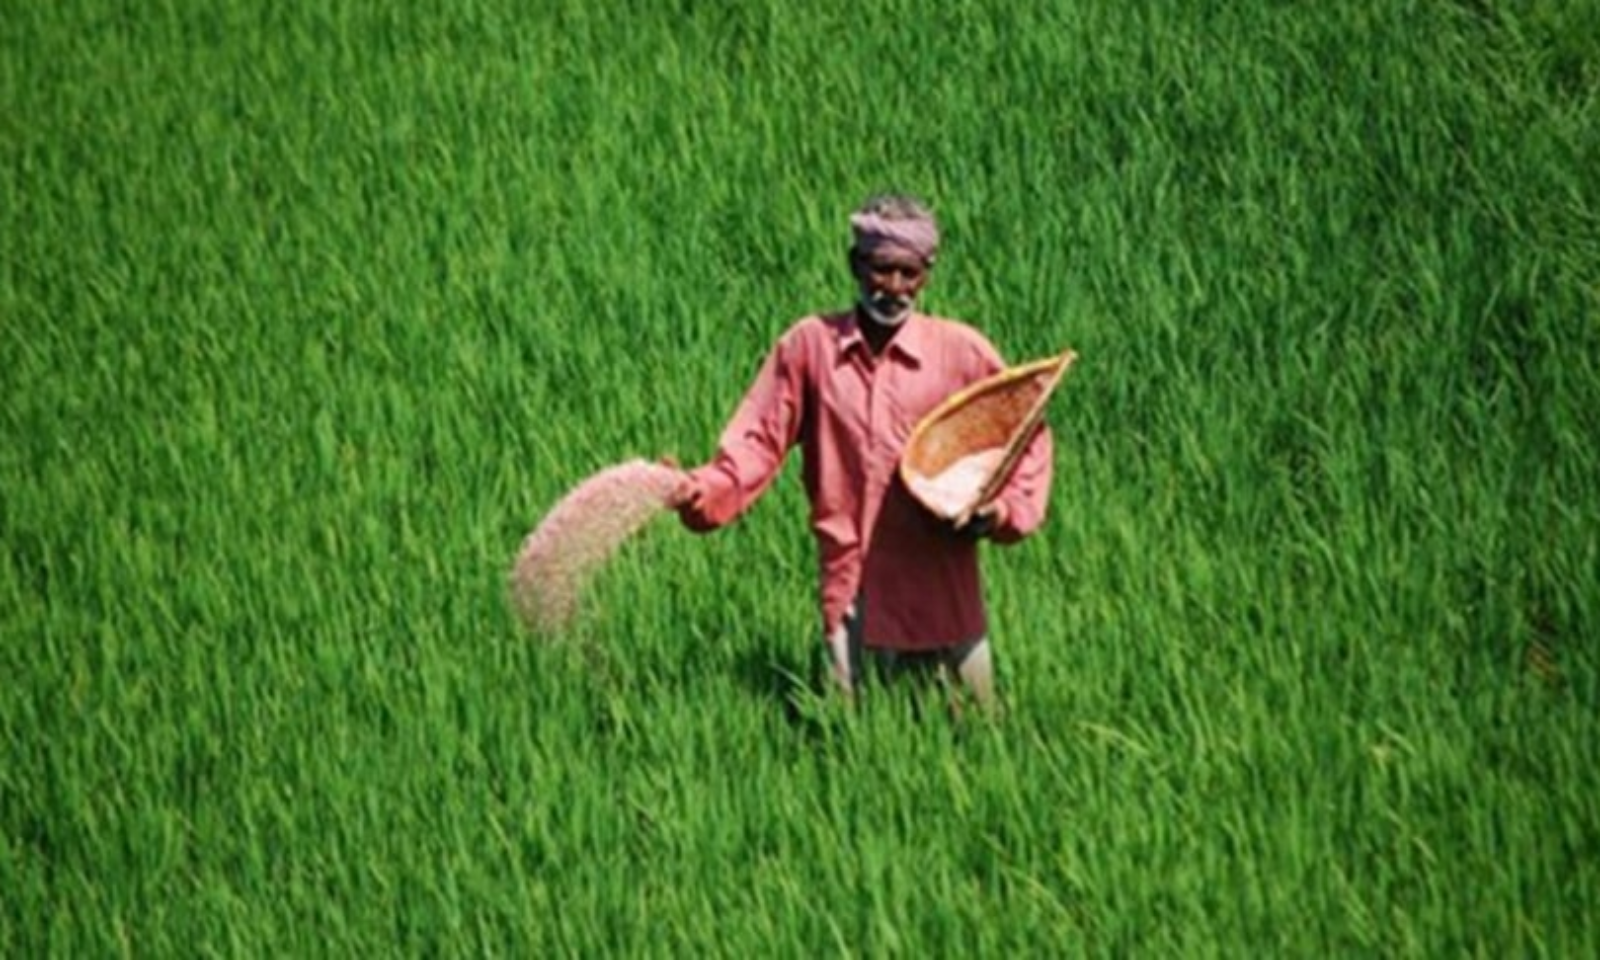 livelaw.in - Akshita Saxena - Parliament Passes Contentious Agricultural Bills For Inter-State Trade, Contract Farming [Read Bills]